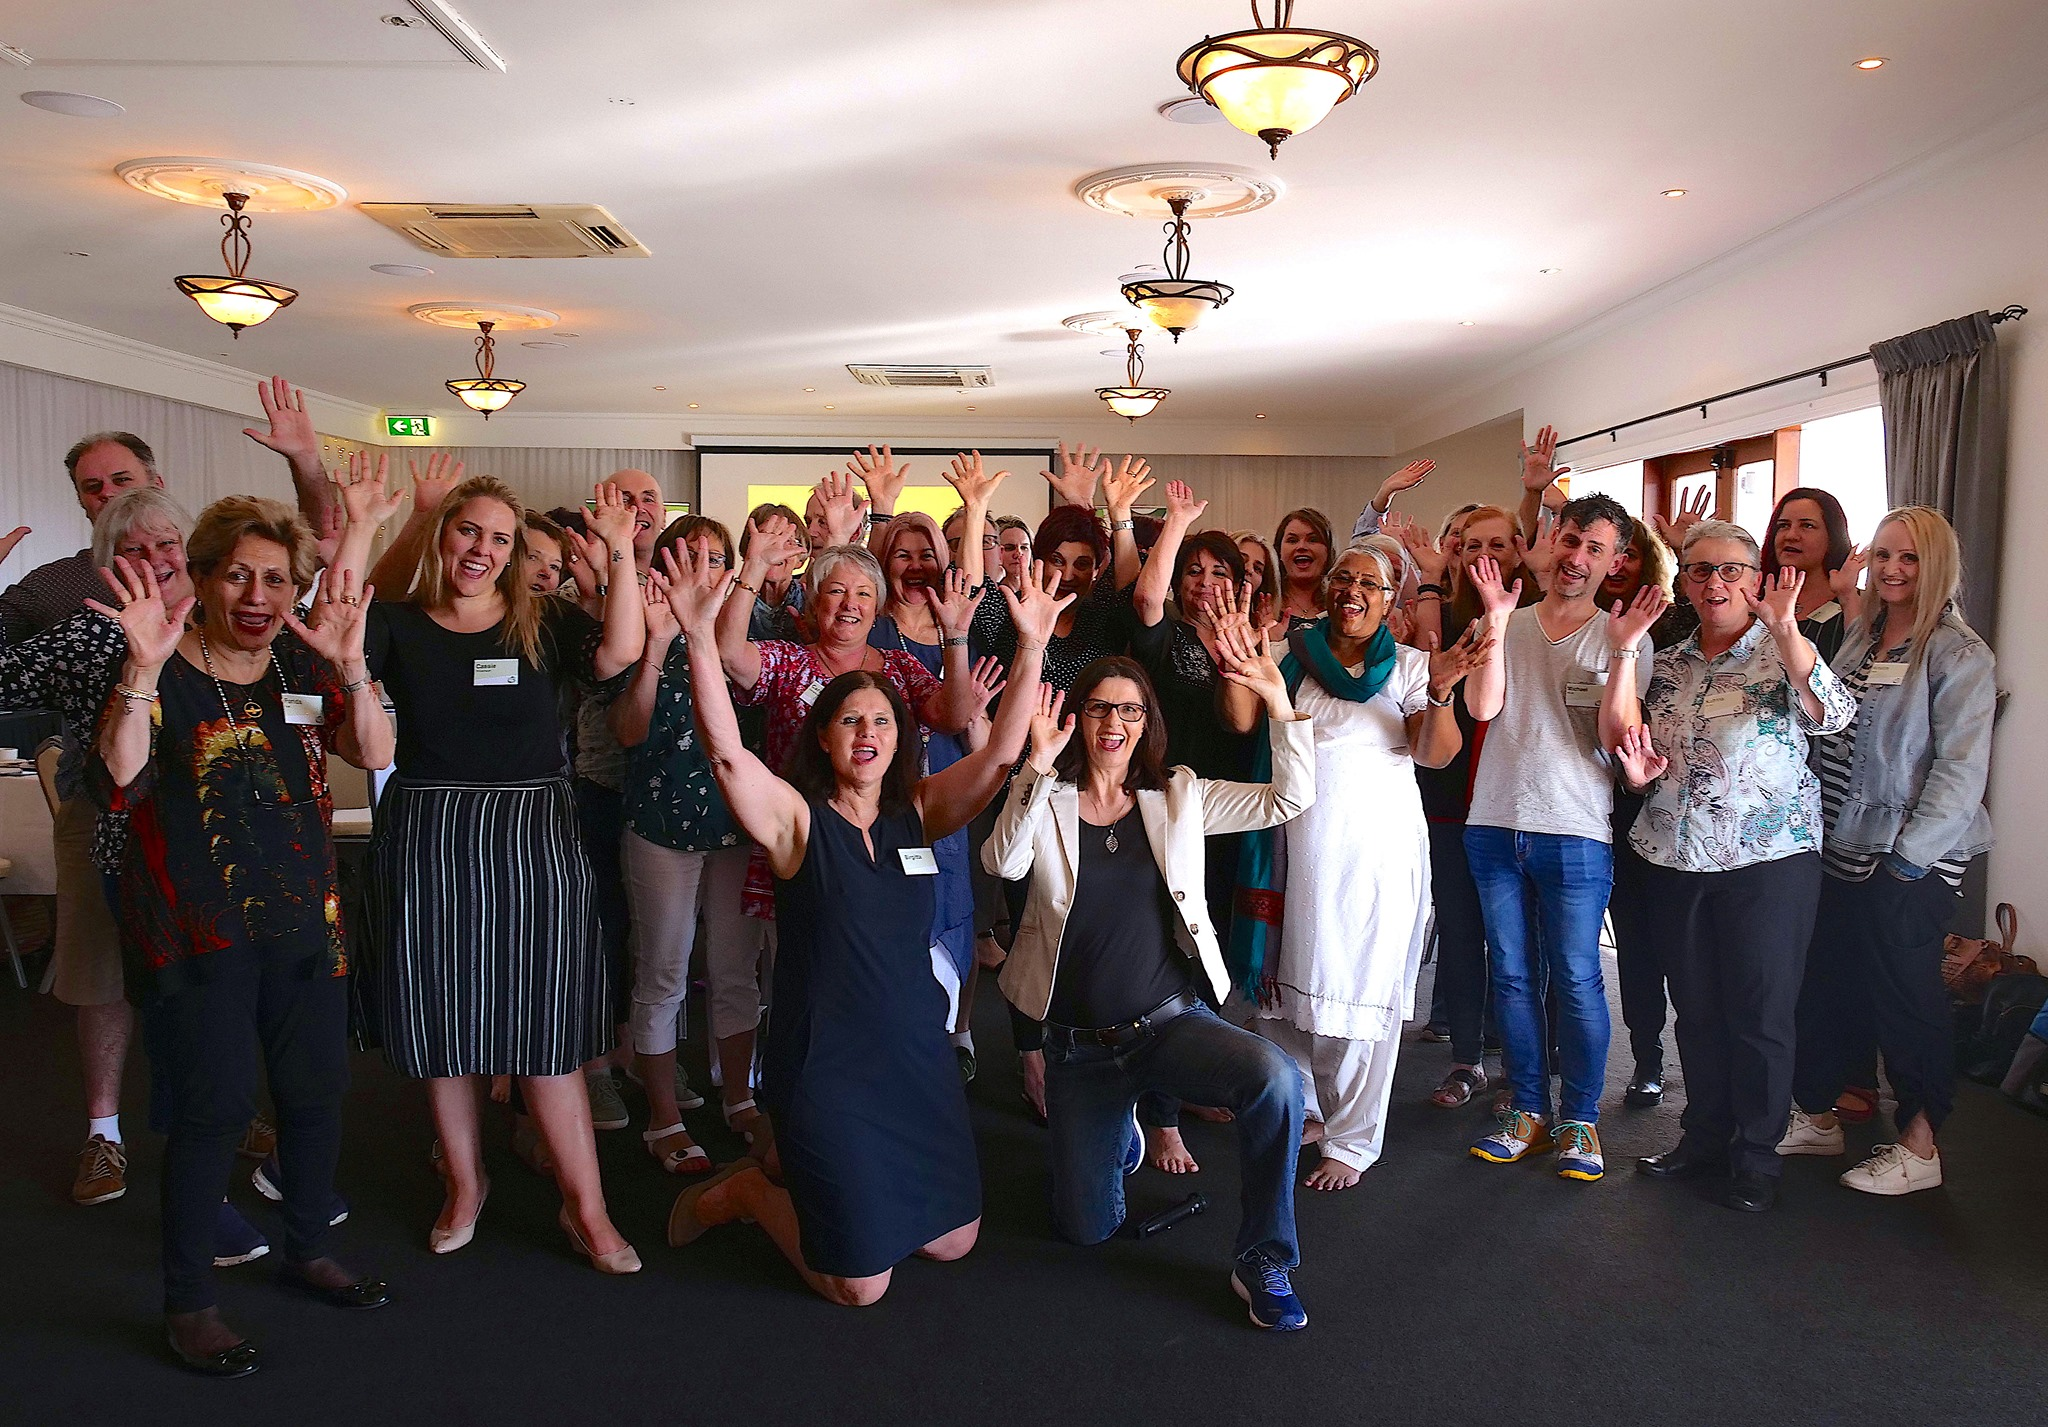 Bowen Training Australia instructors and staff group photo hands in the air